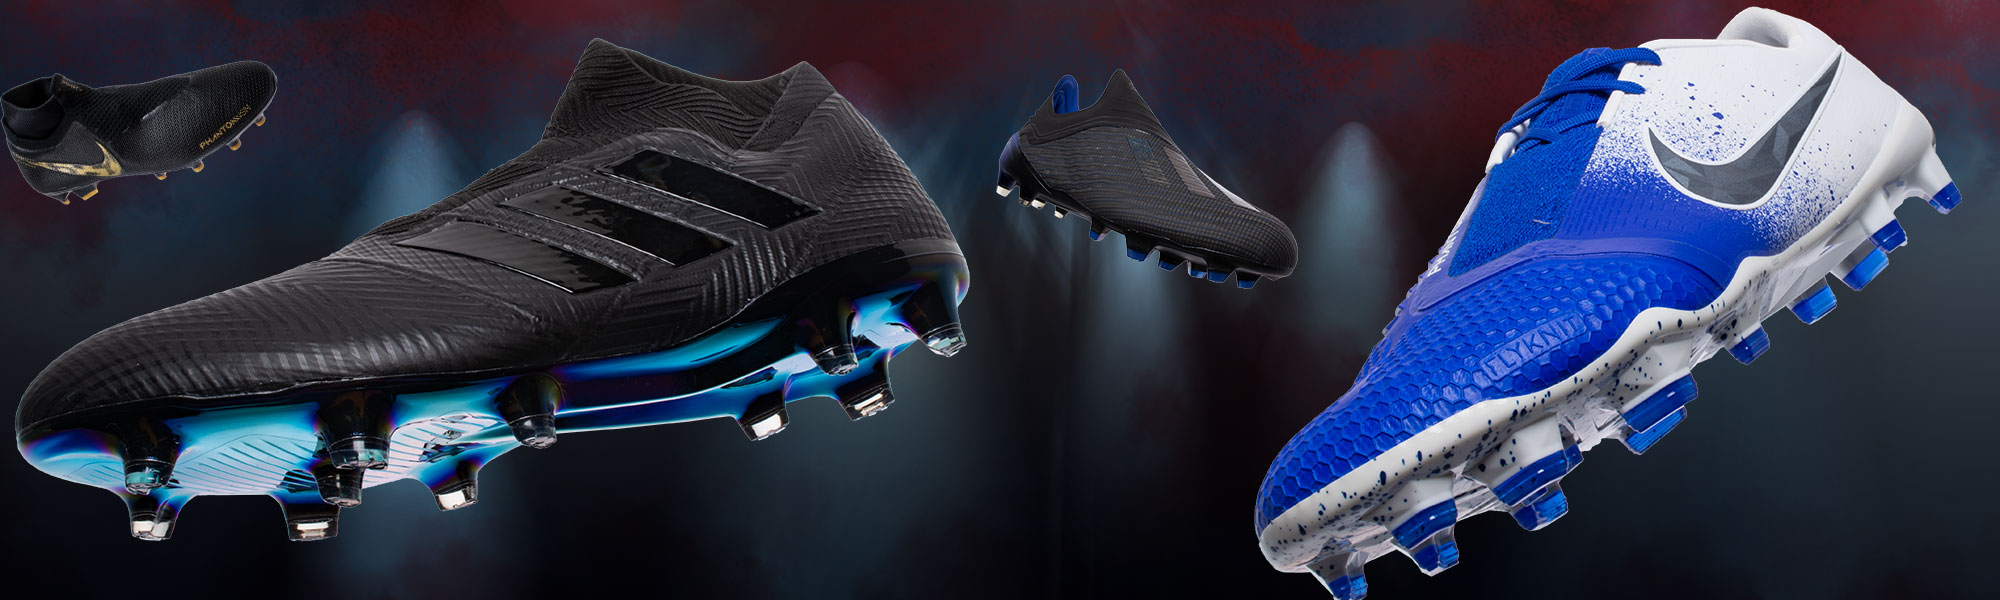 Clearance soccer shoes